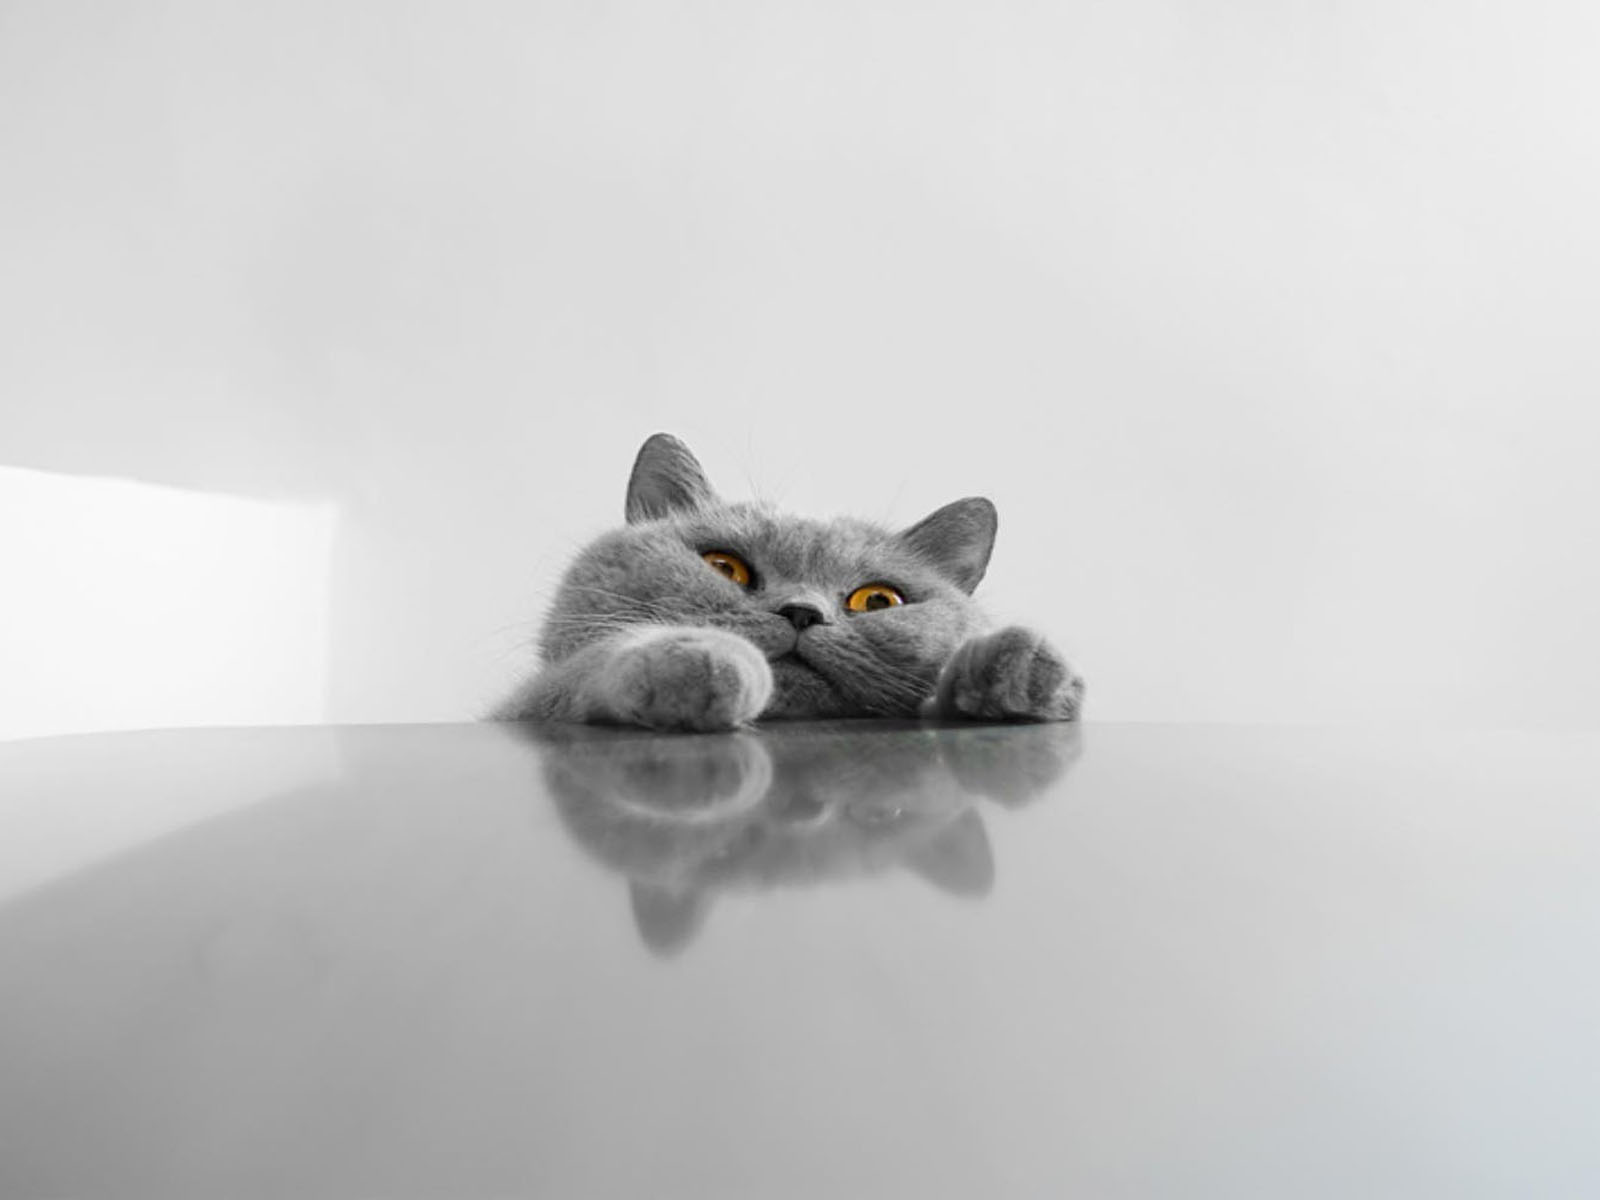 funny kittens wallpapers - photo #21